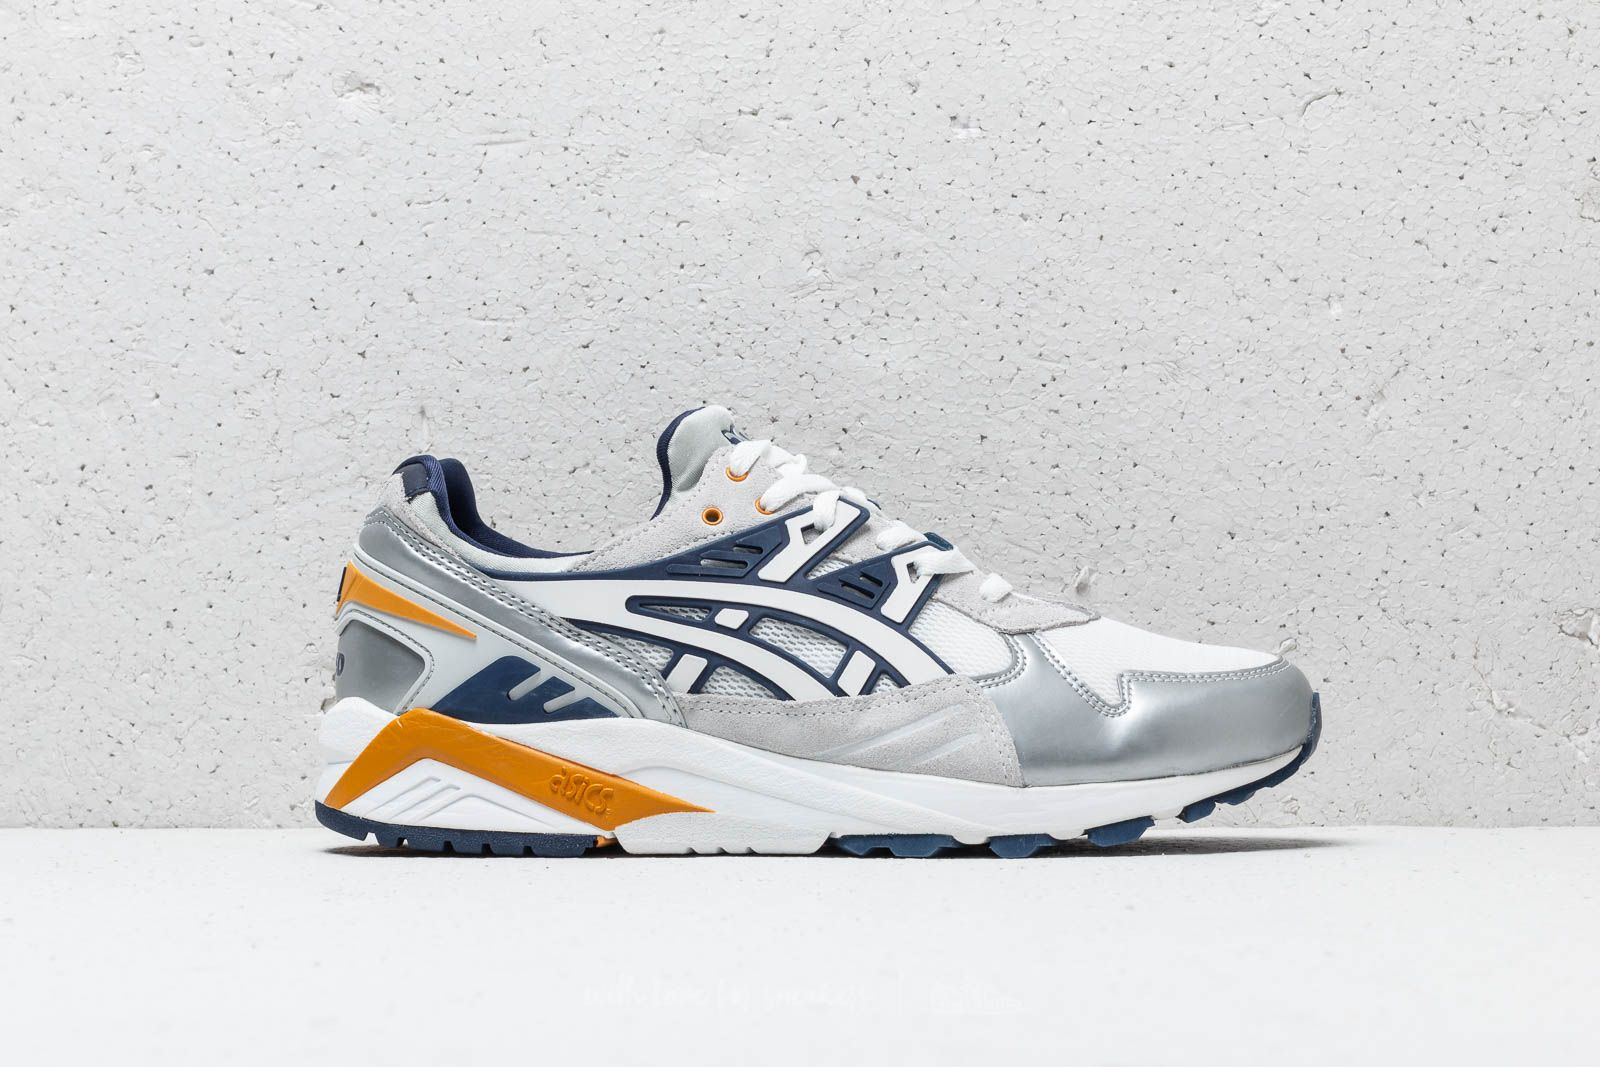 a4d297c7 Asics x Naked Gel-Kayano Trainer White/ Peacoat at a great price 99 €